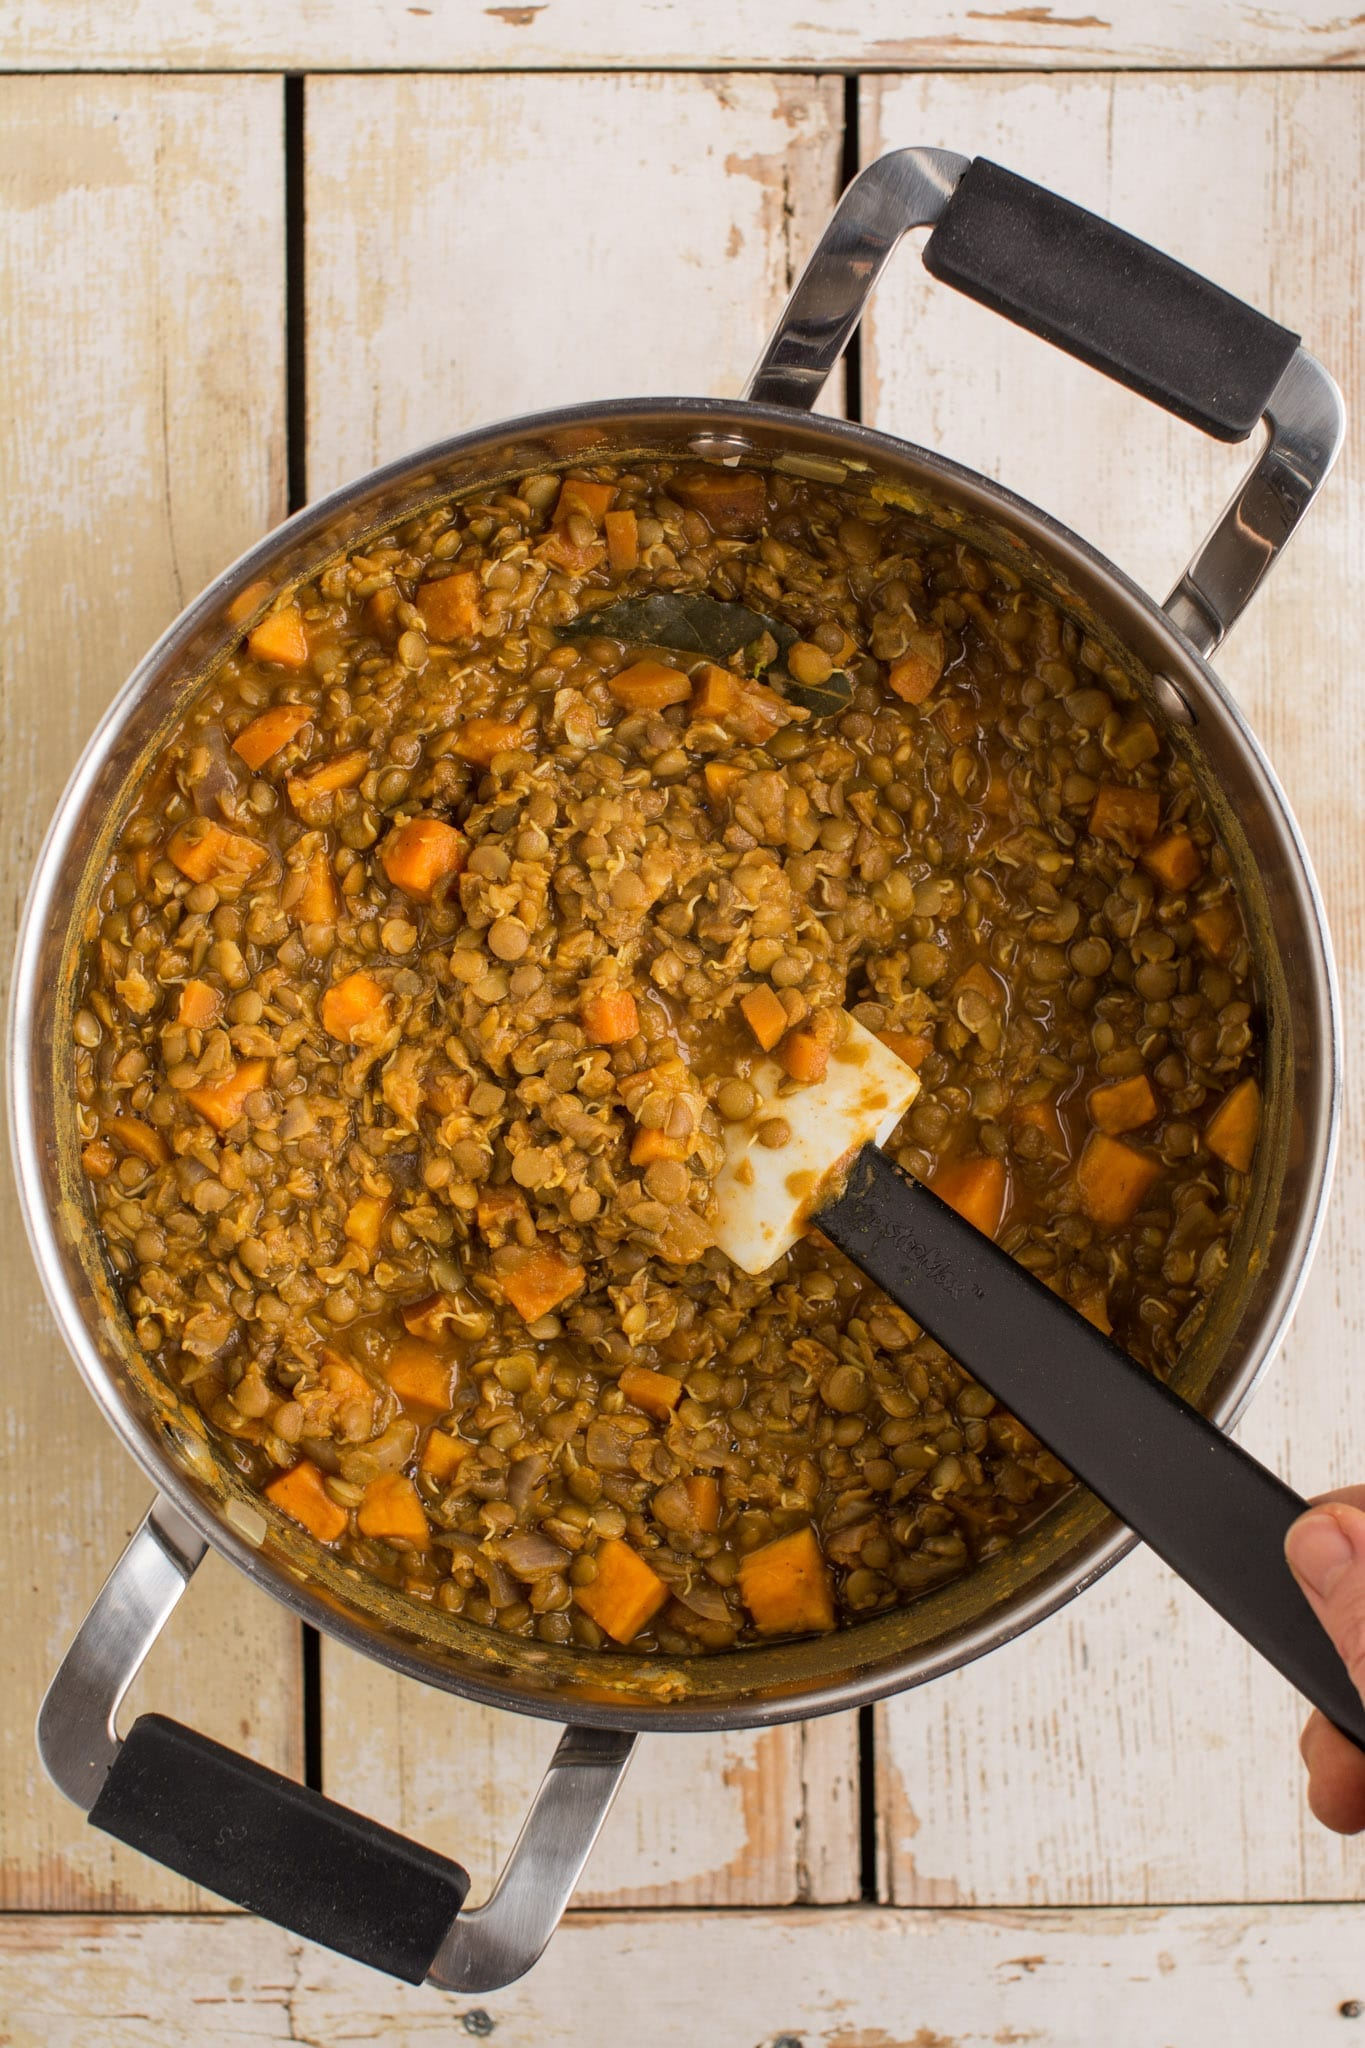 Delicious sweet potato lentil stew is perfect for a weeknight dinner. Ready in 30 minutes. Ideal for meal prepping.